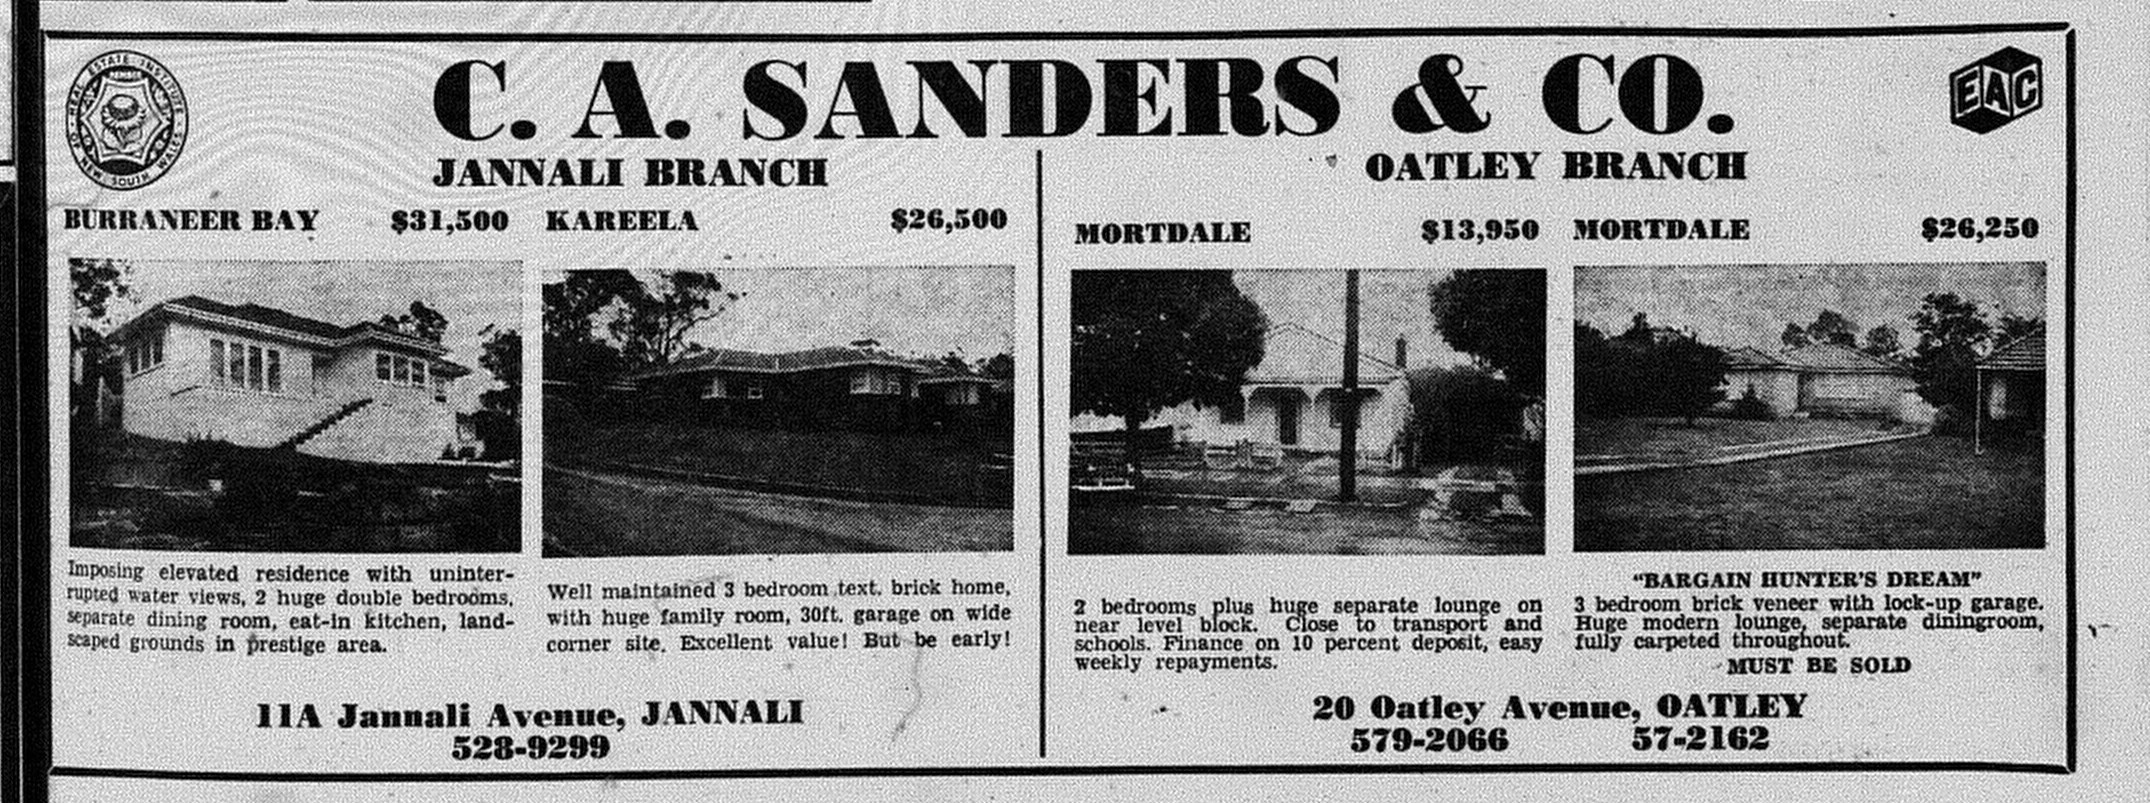 CA Sanders and Co Ad November 17 1971 The Leader page unknown